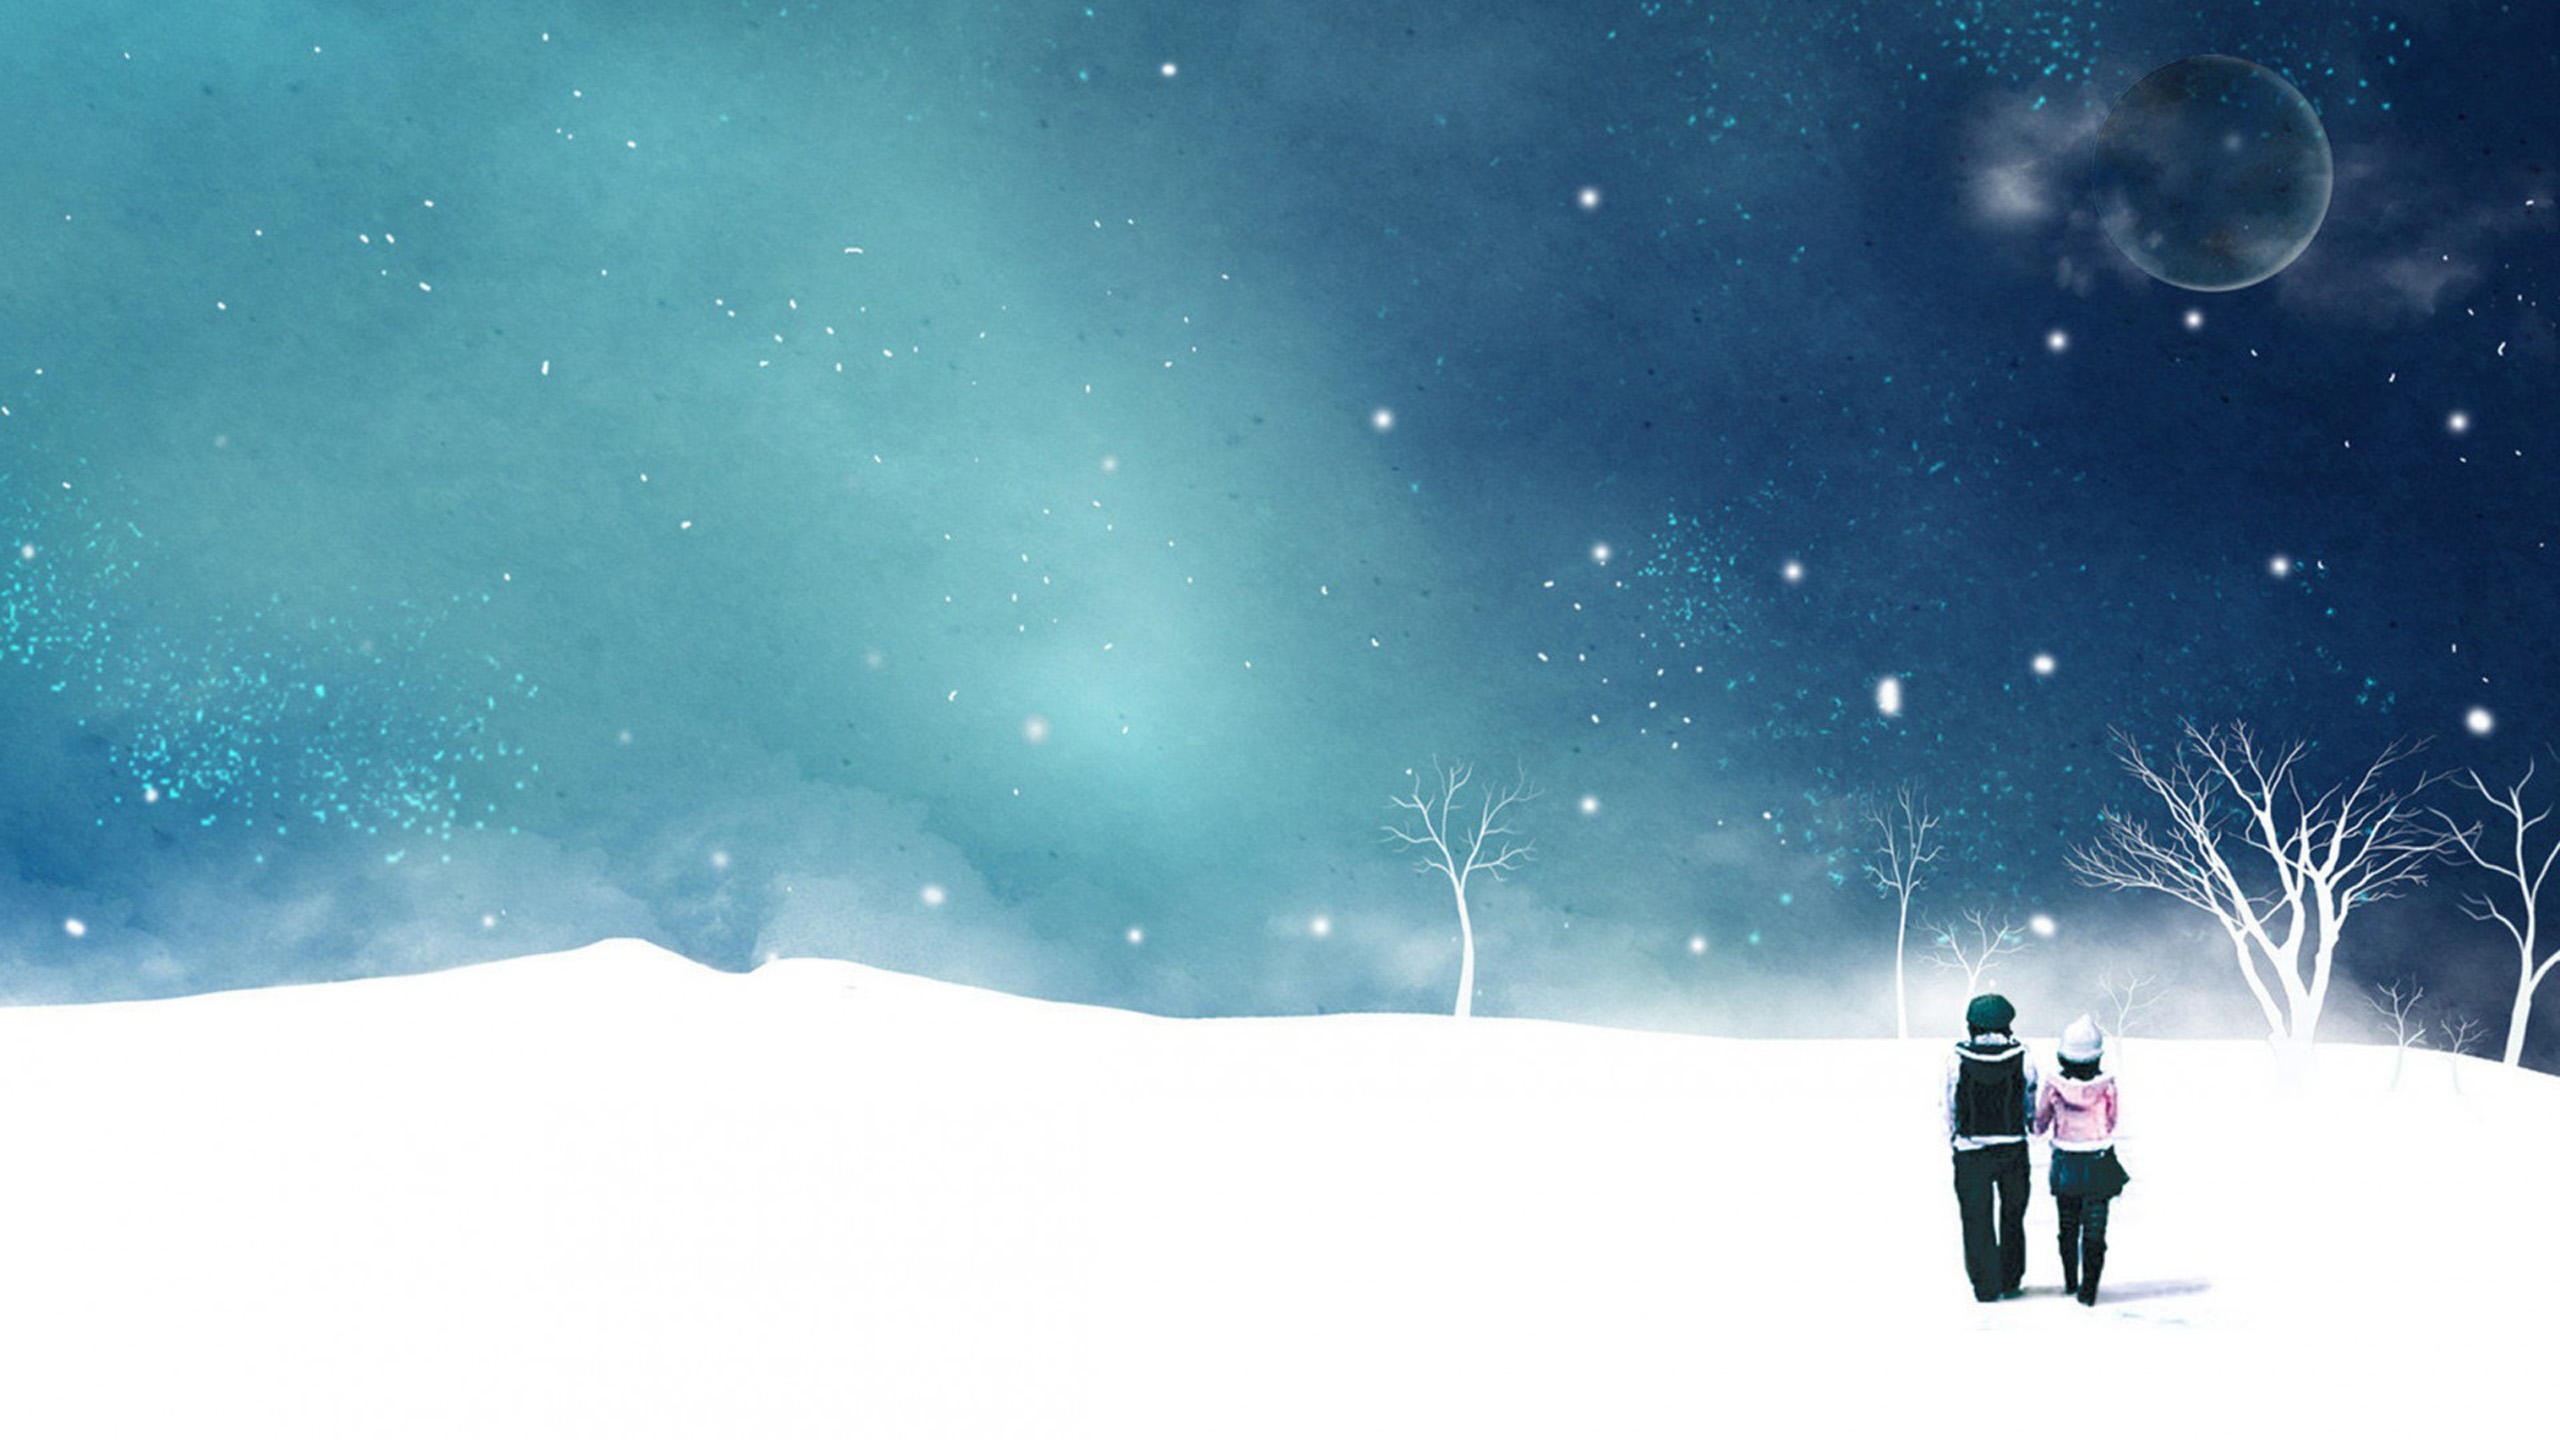 Inspirational Wallpapers With Quotes High Resolution Hd Winter Love Wallpaper Pixelstalk Net